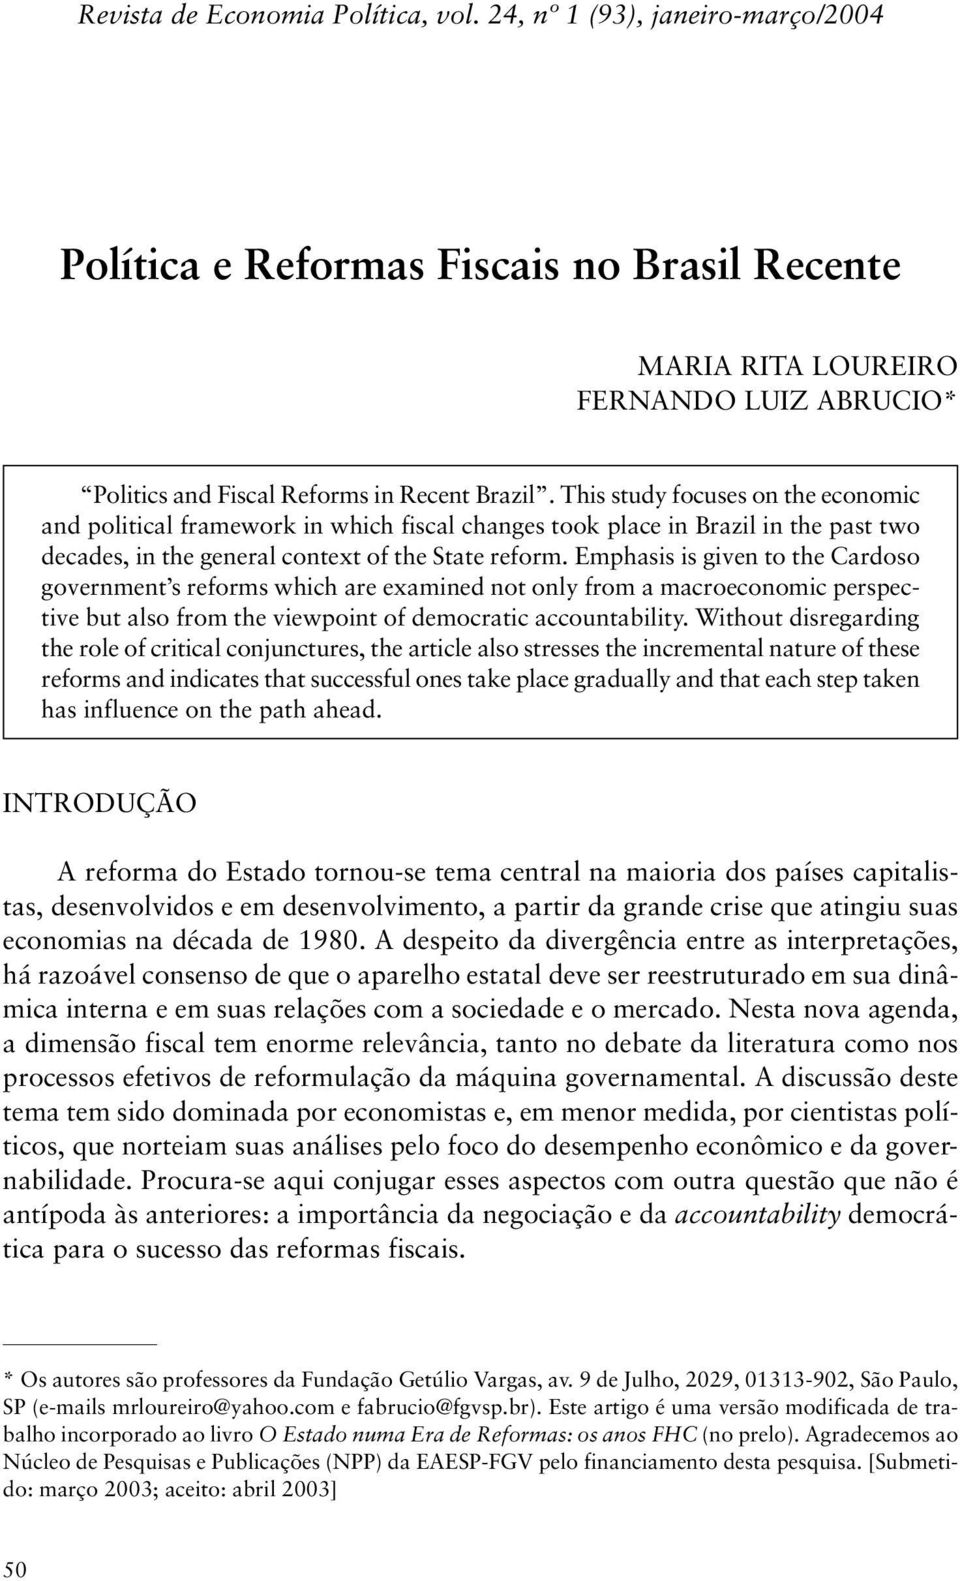 This study focuses on the economic and political framework in which fiscal changes took place in Brazil in the past two decades, in the general context of the State reform.